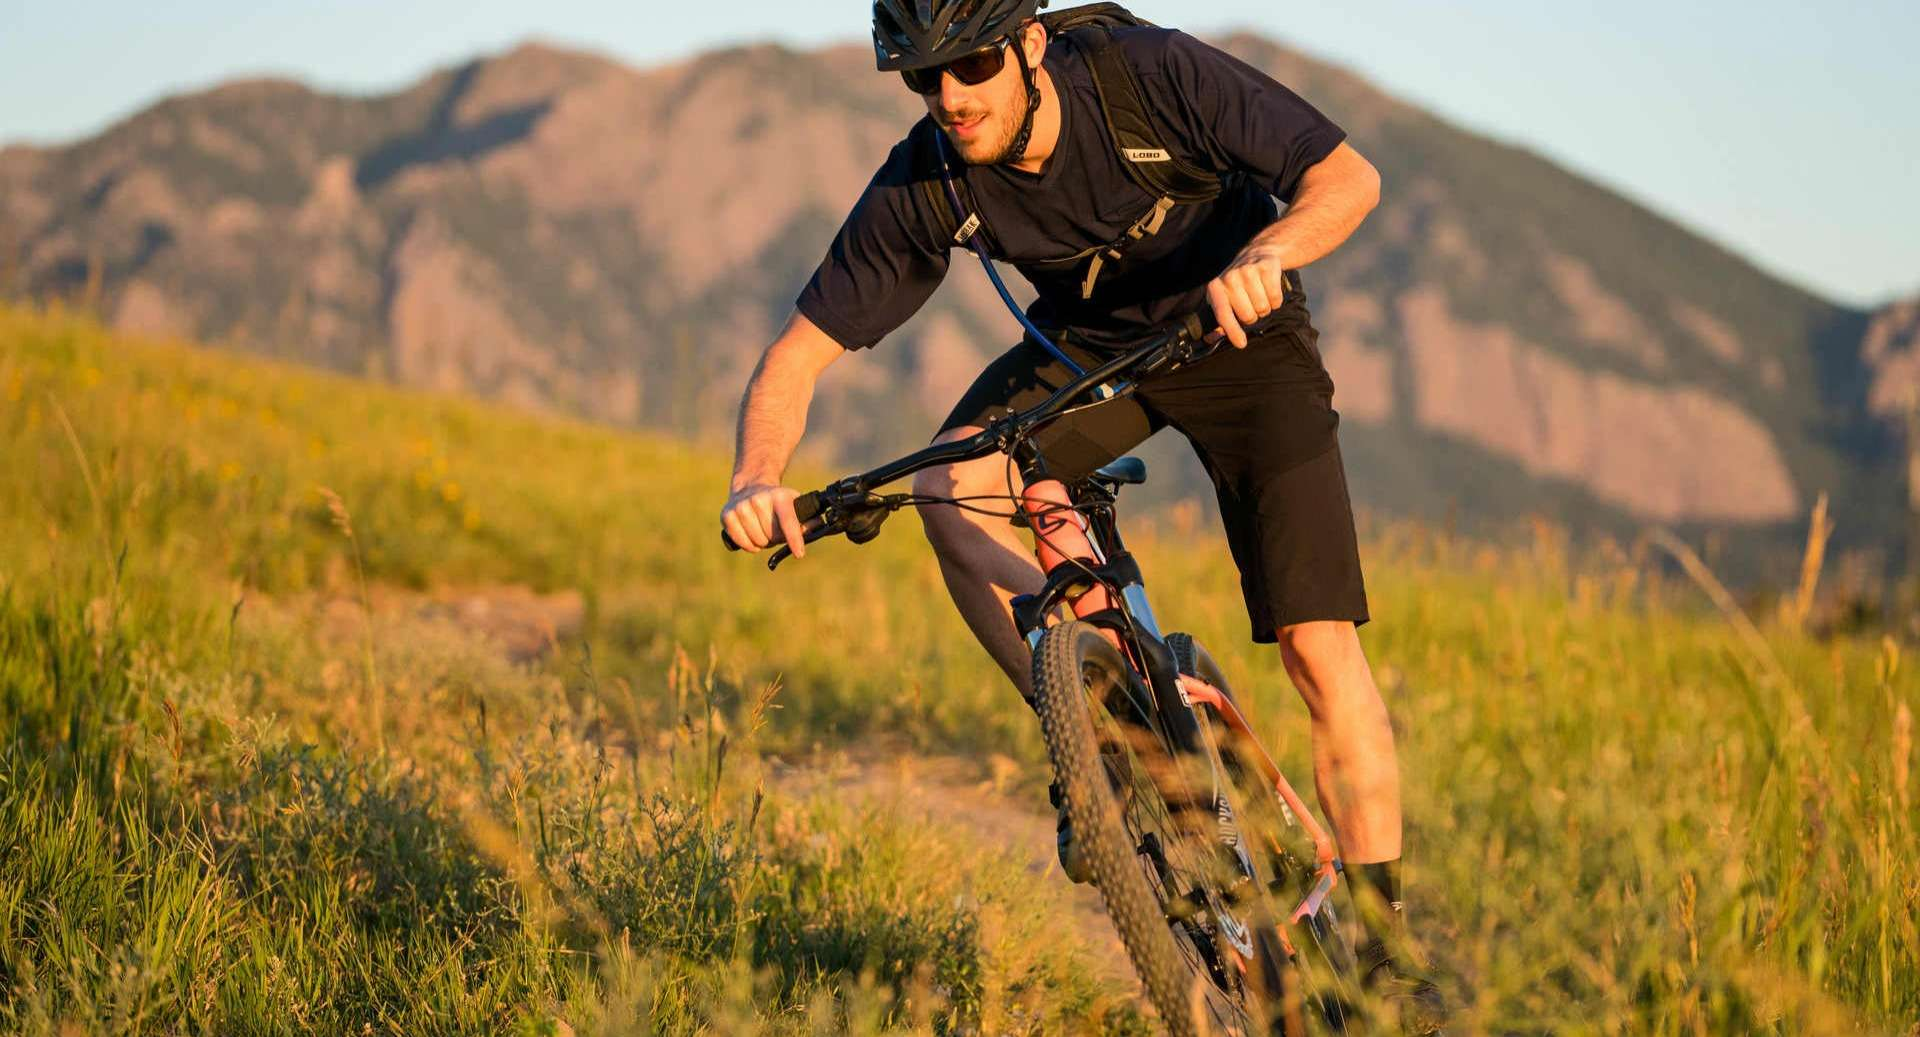 Riding Style - Cannondale Trail Bike